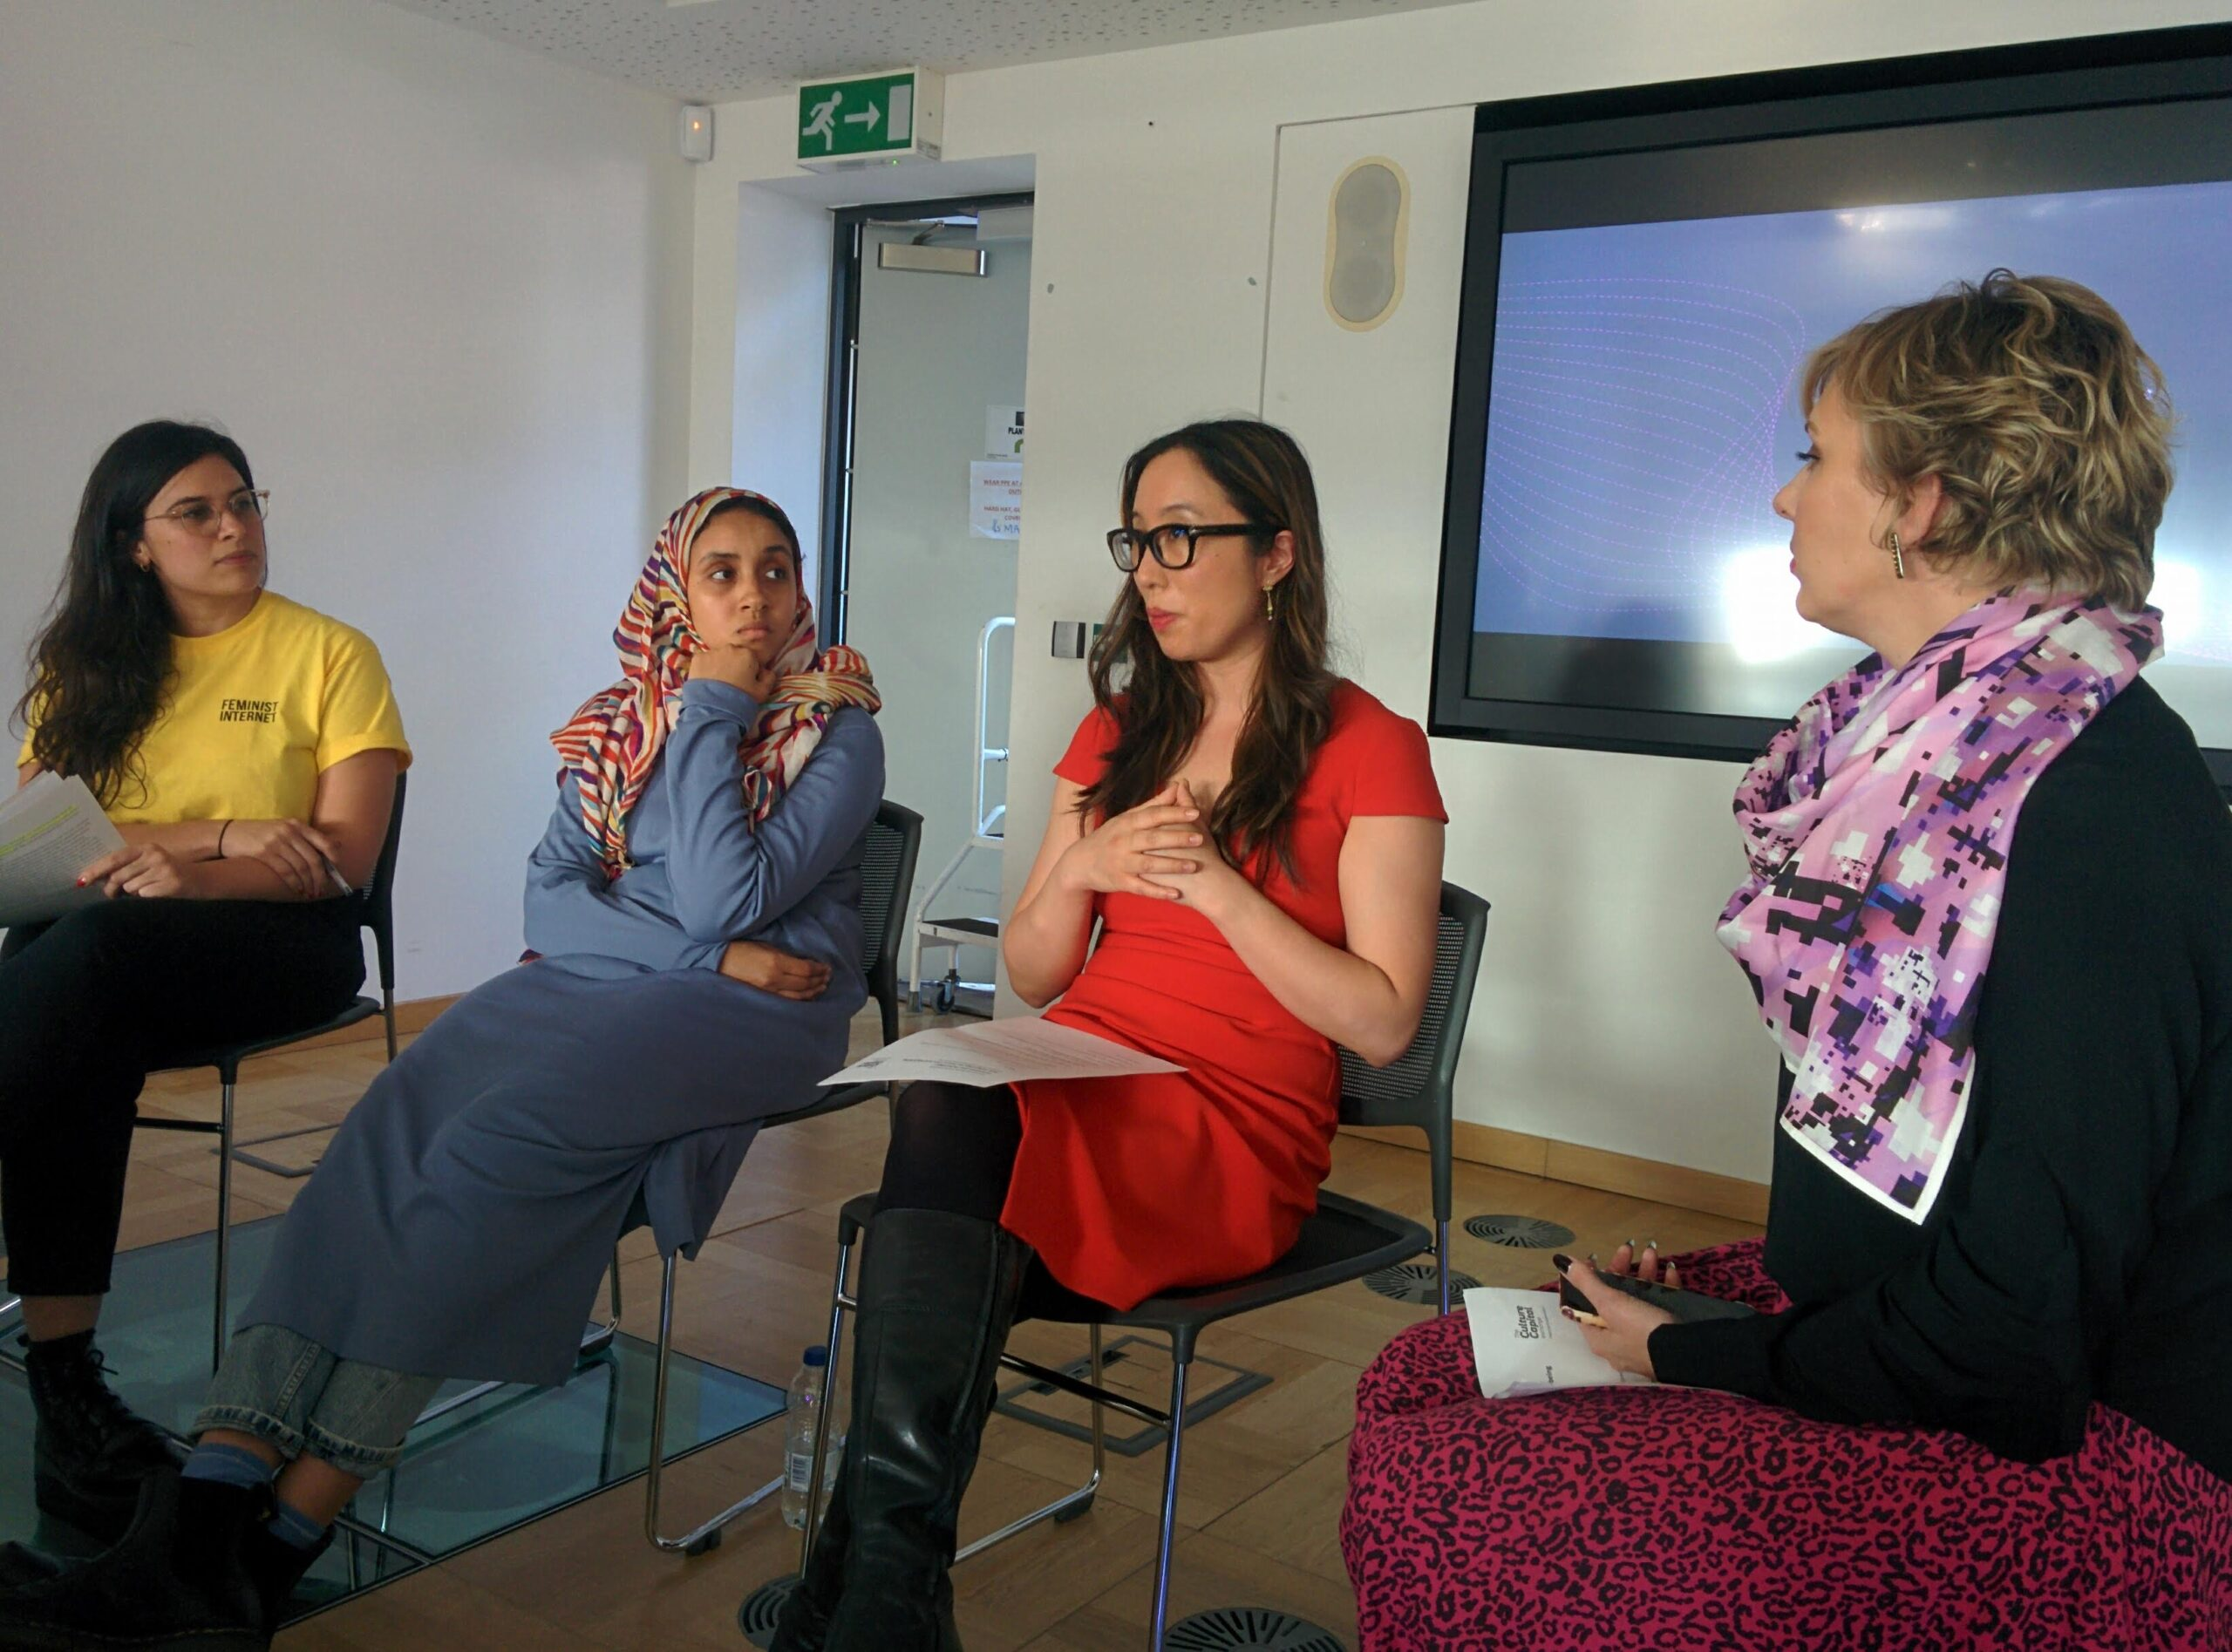 """From left: Dr Romy Gad el Rab, Hyphen-Labs; Abira Hussein, Independent Curator and Researcher; Dr Christine """"Xine"""" Yao, UCL; Charlotte Frost, Furtherfield"""